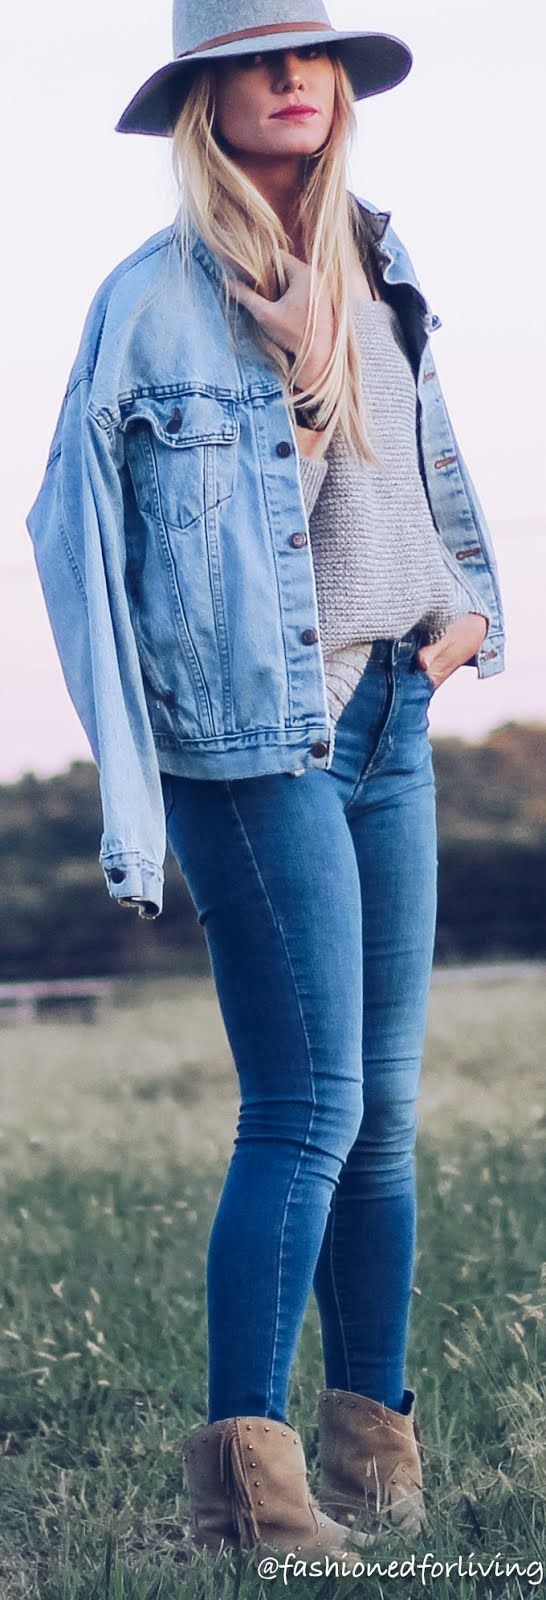 Fall Cowgirl Boots Outfit With Denim Jacket And Oversized Sweater Fall Denim Jacket Casual Denim Jacket Fall Denim [ 1600 x 546 Pixel ]